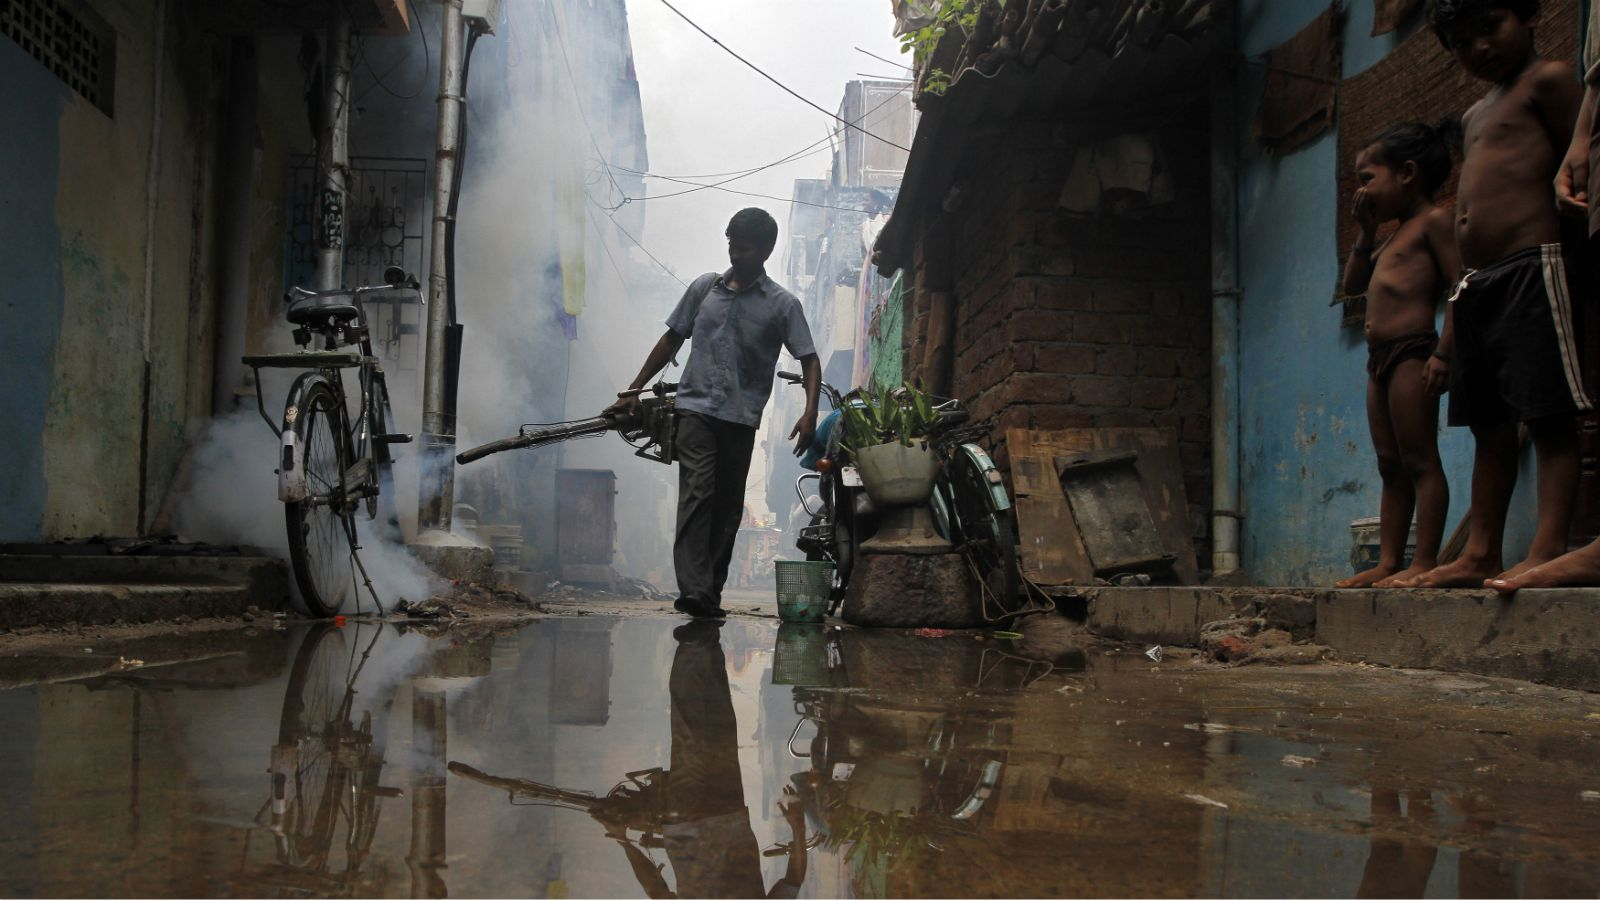 A Chennai Corporation worker fumigates a residential area in the southern Indian city of Chennai October 25, 2012. Chennai Corporation conducted fumigation of the residential areas to prevent the spread of dengue, a mosquito-transmitted virus that causes a fever which can be deadly, the corporation's officials said.